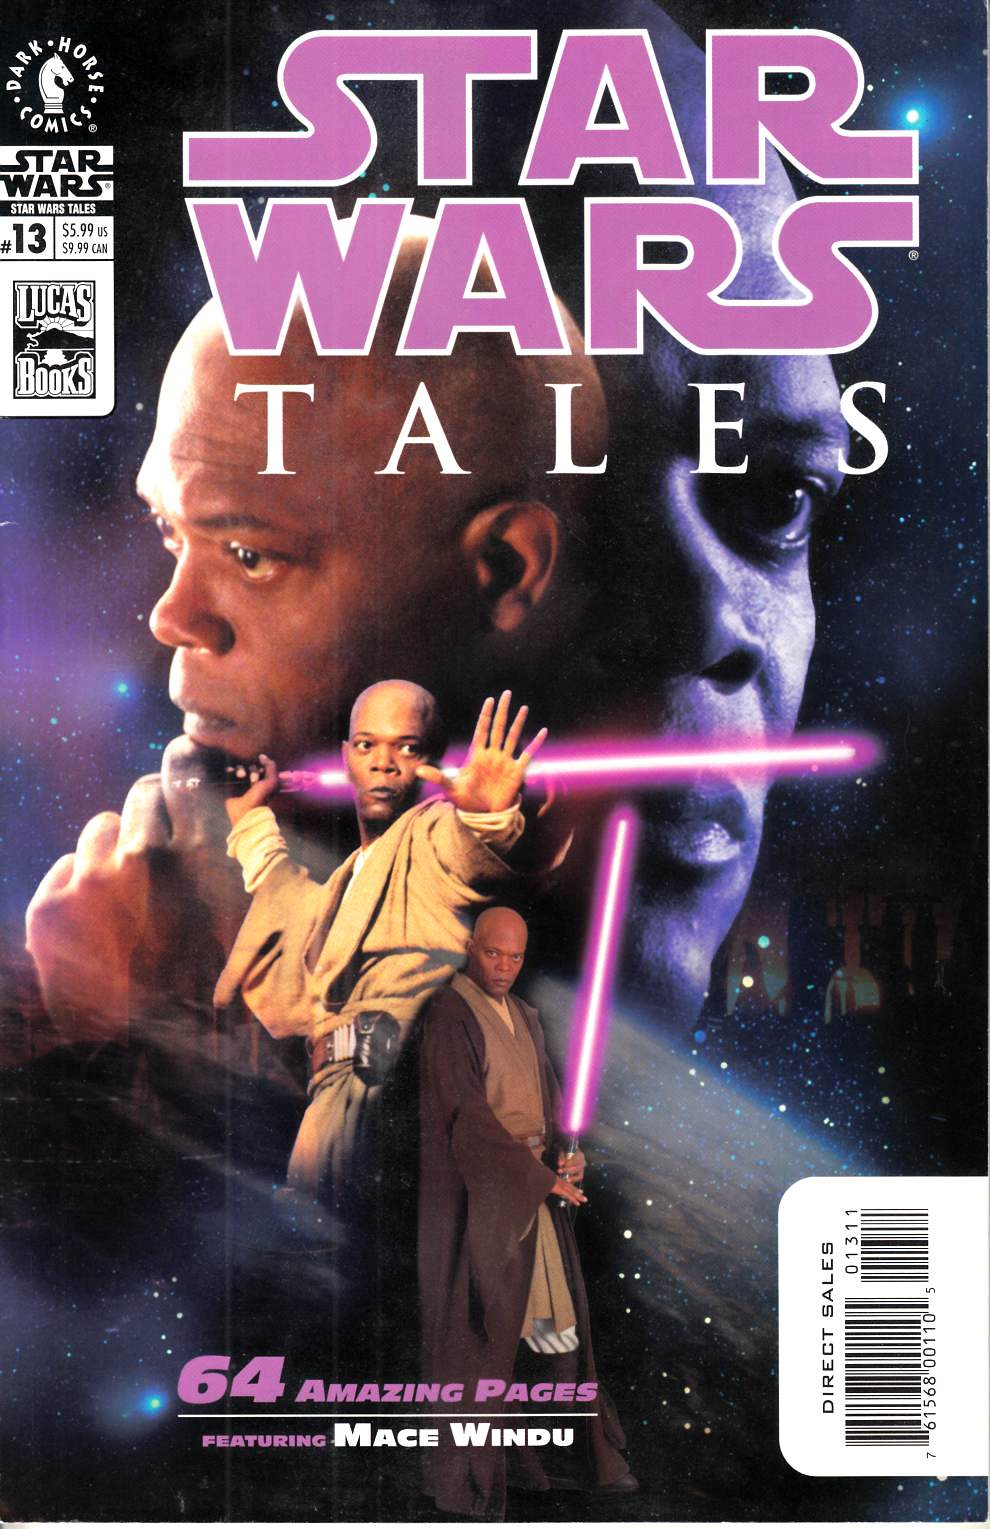 Star Wars Tales #13 Photo Cover Very Fine (8.0) [Dark Horse Comic] THUMBNAIL